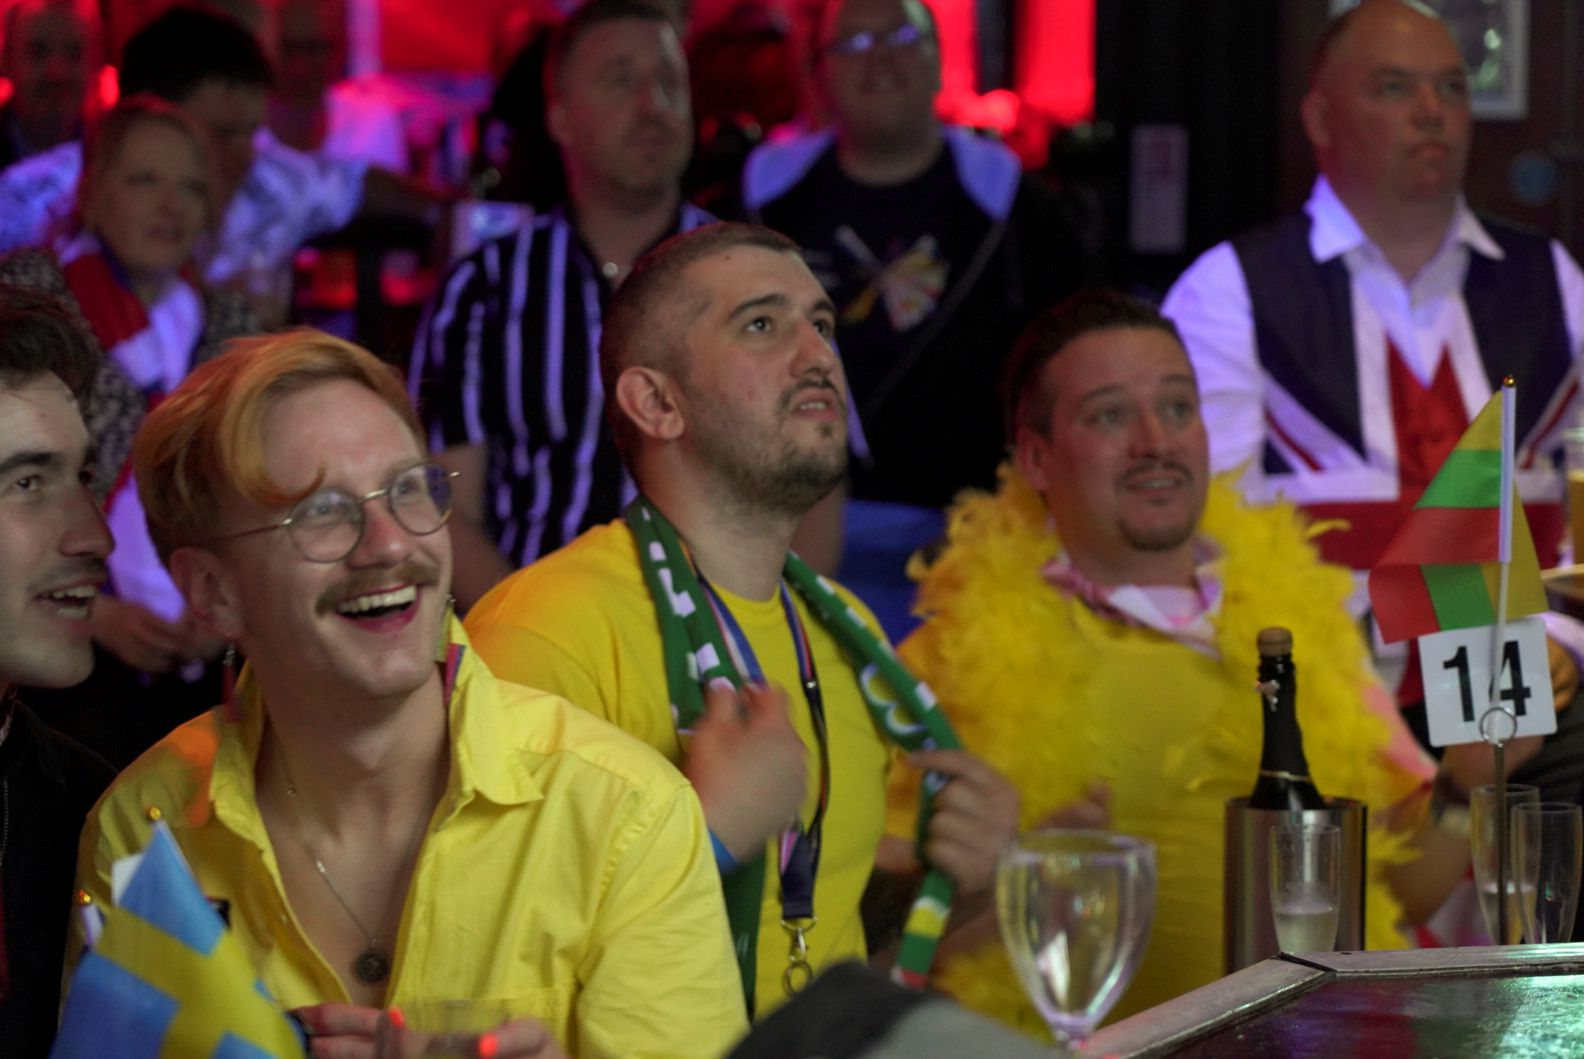 Eurovision fans in London celebrate the contest and seeing old friends again